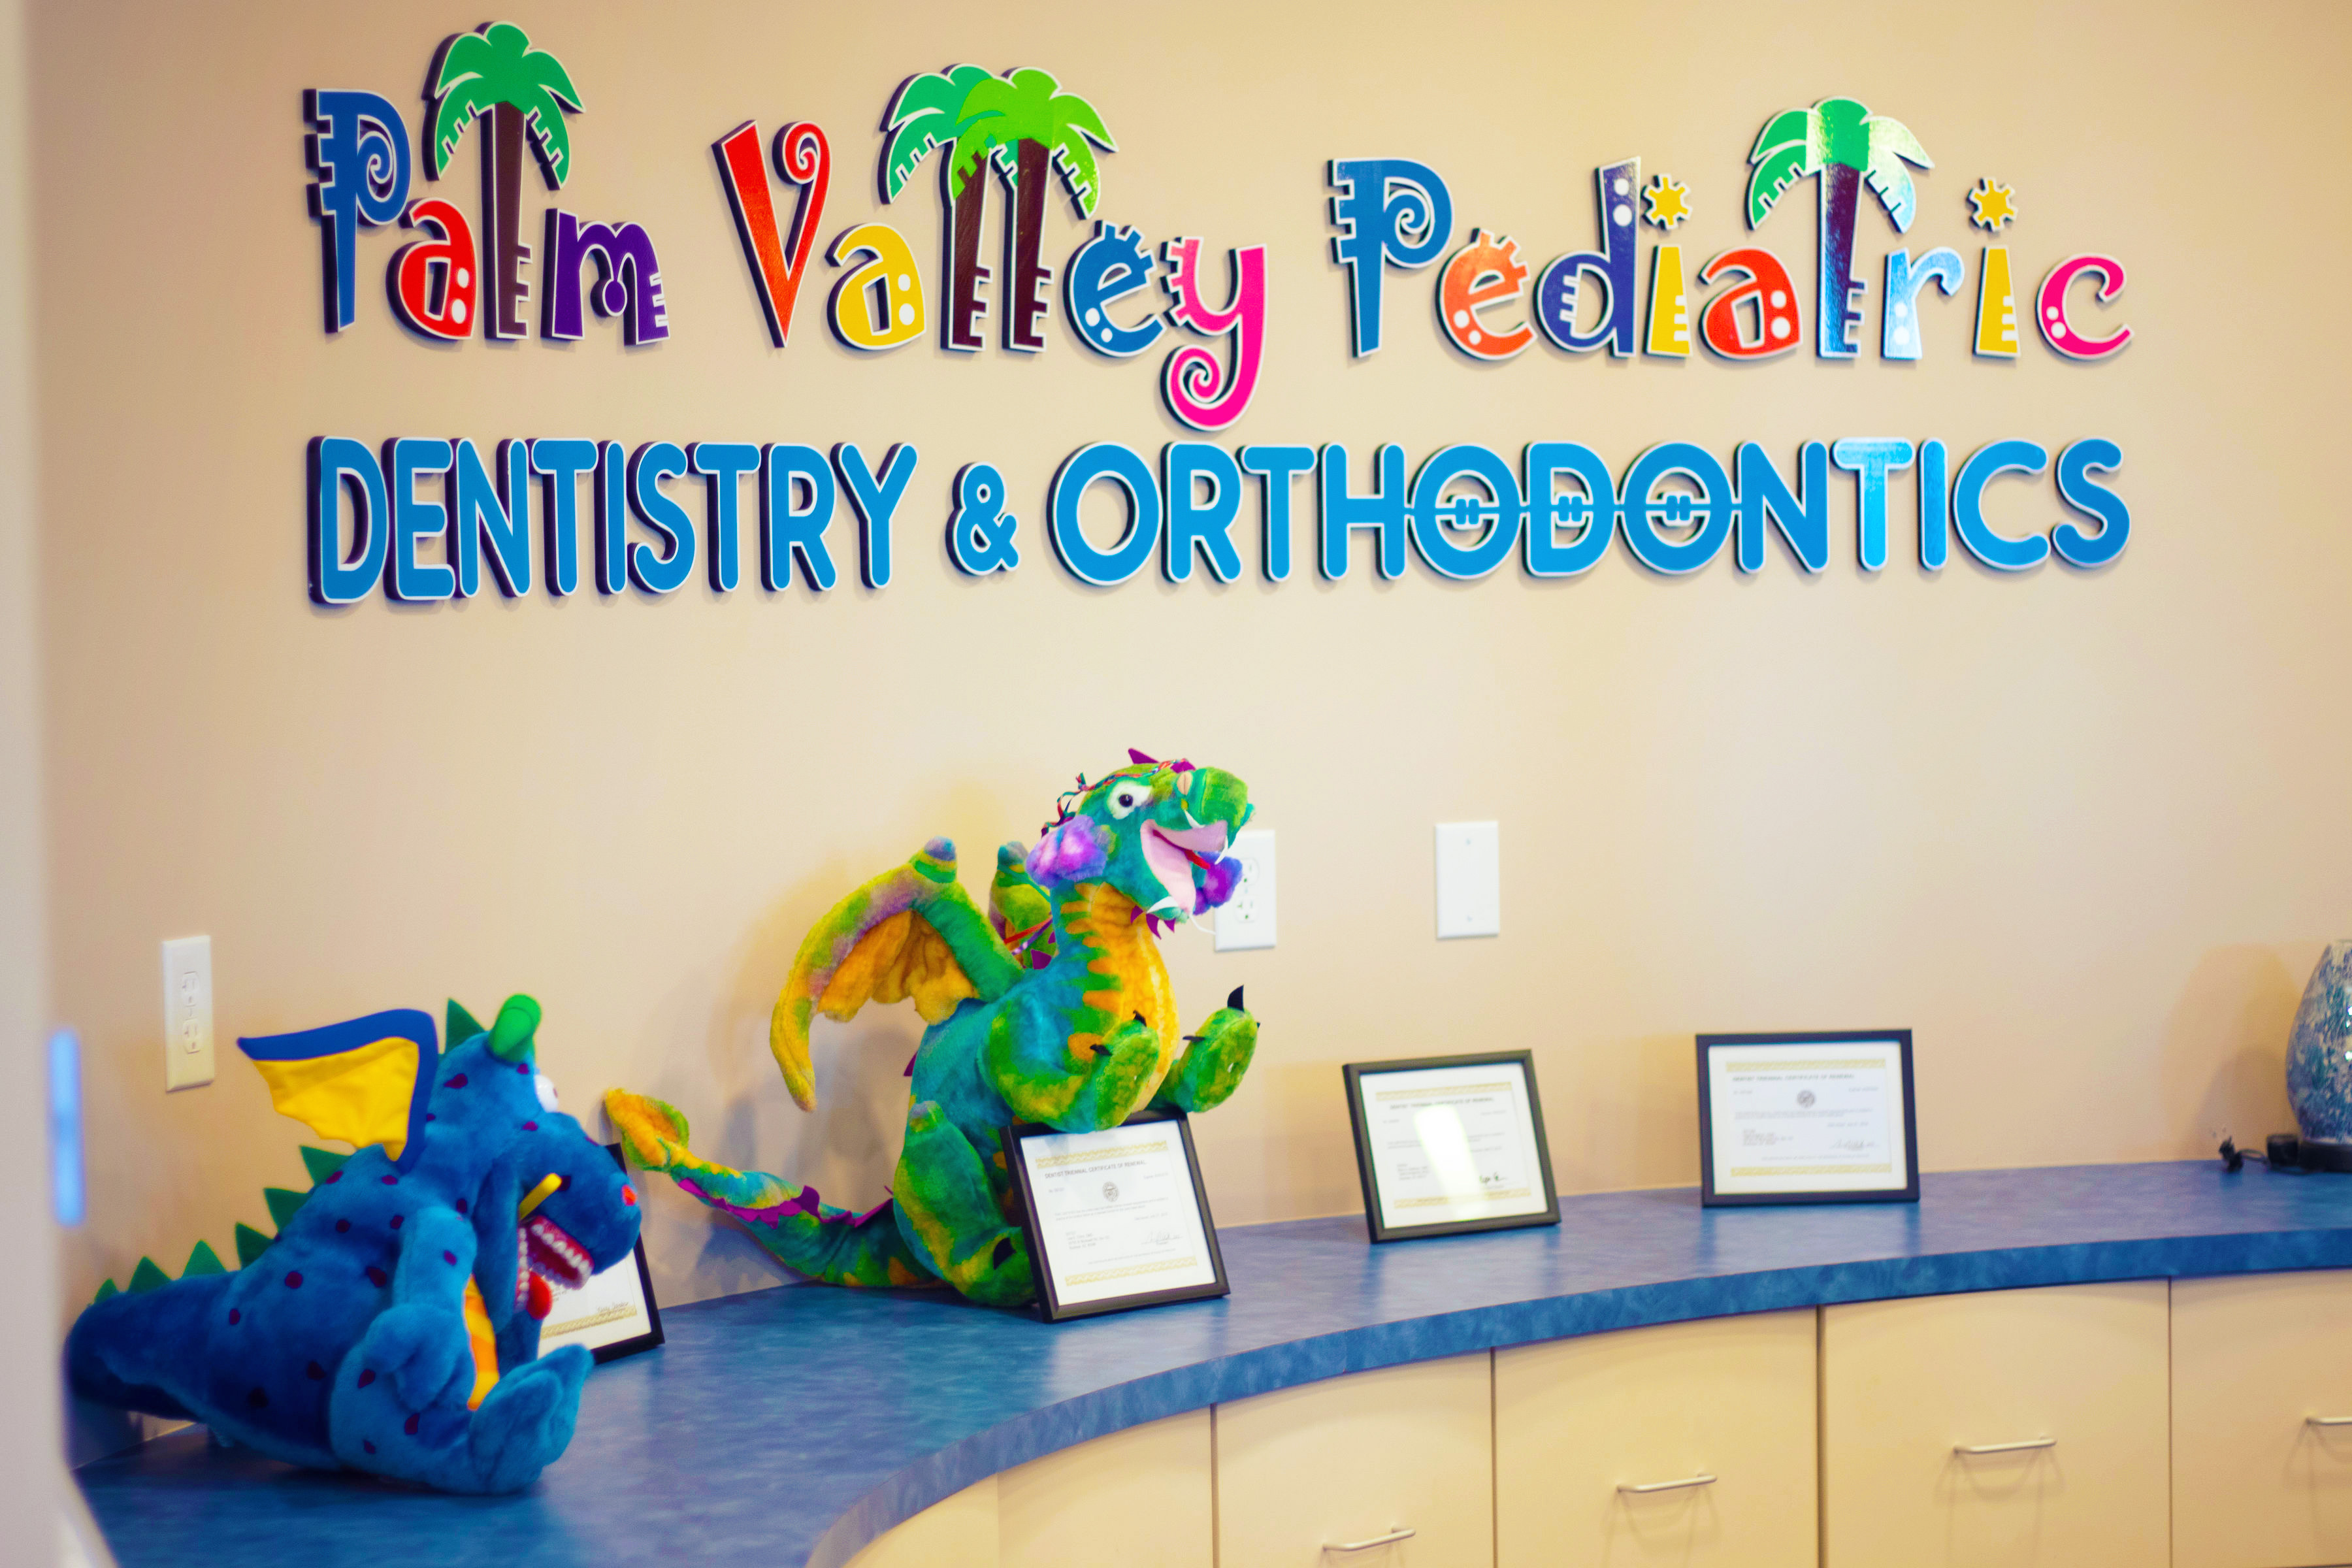 About Us – Palm Valley Pediatric Dentistry & Orthodontics